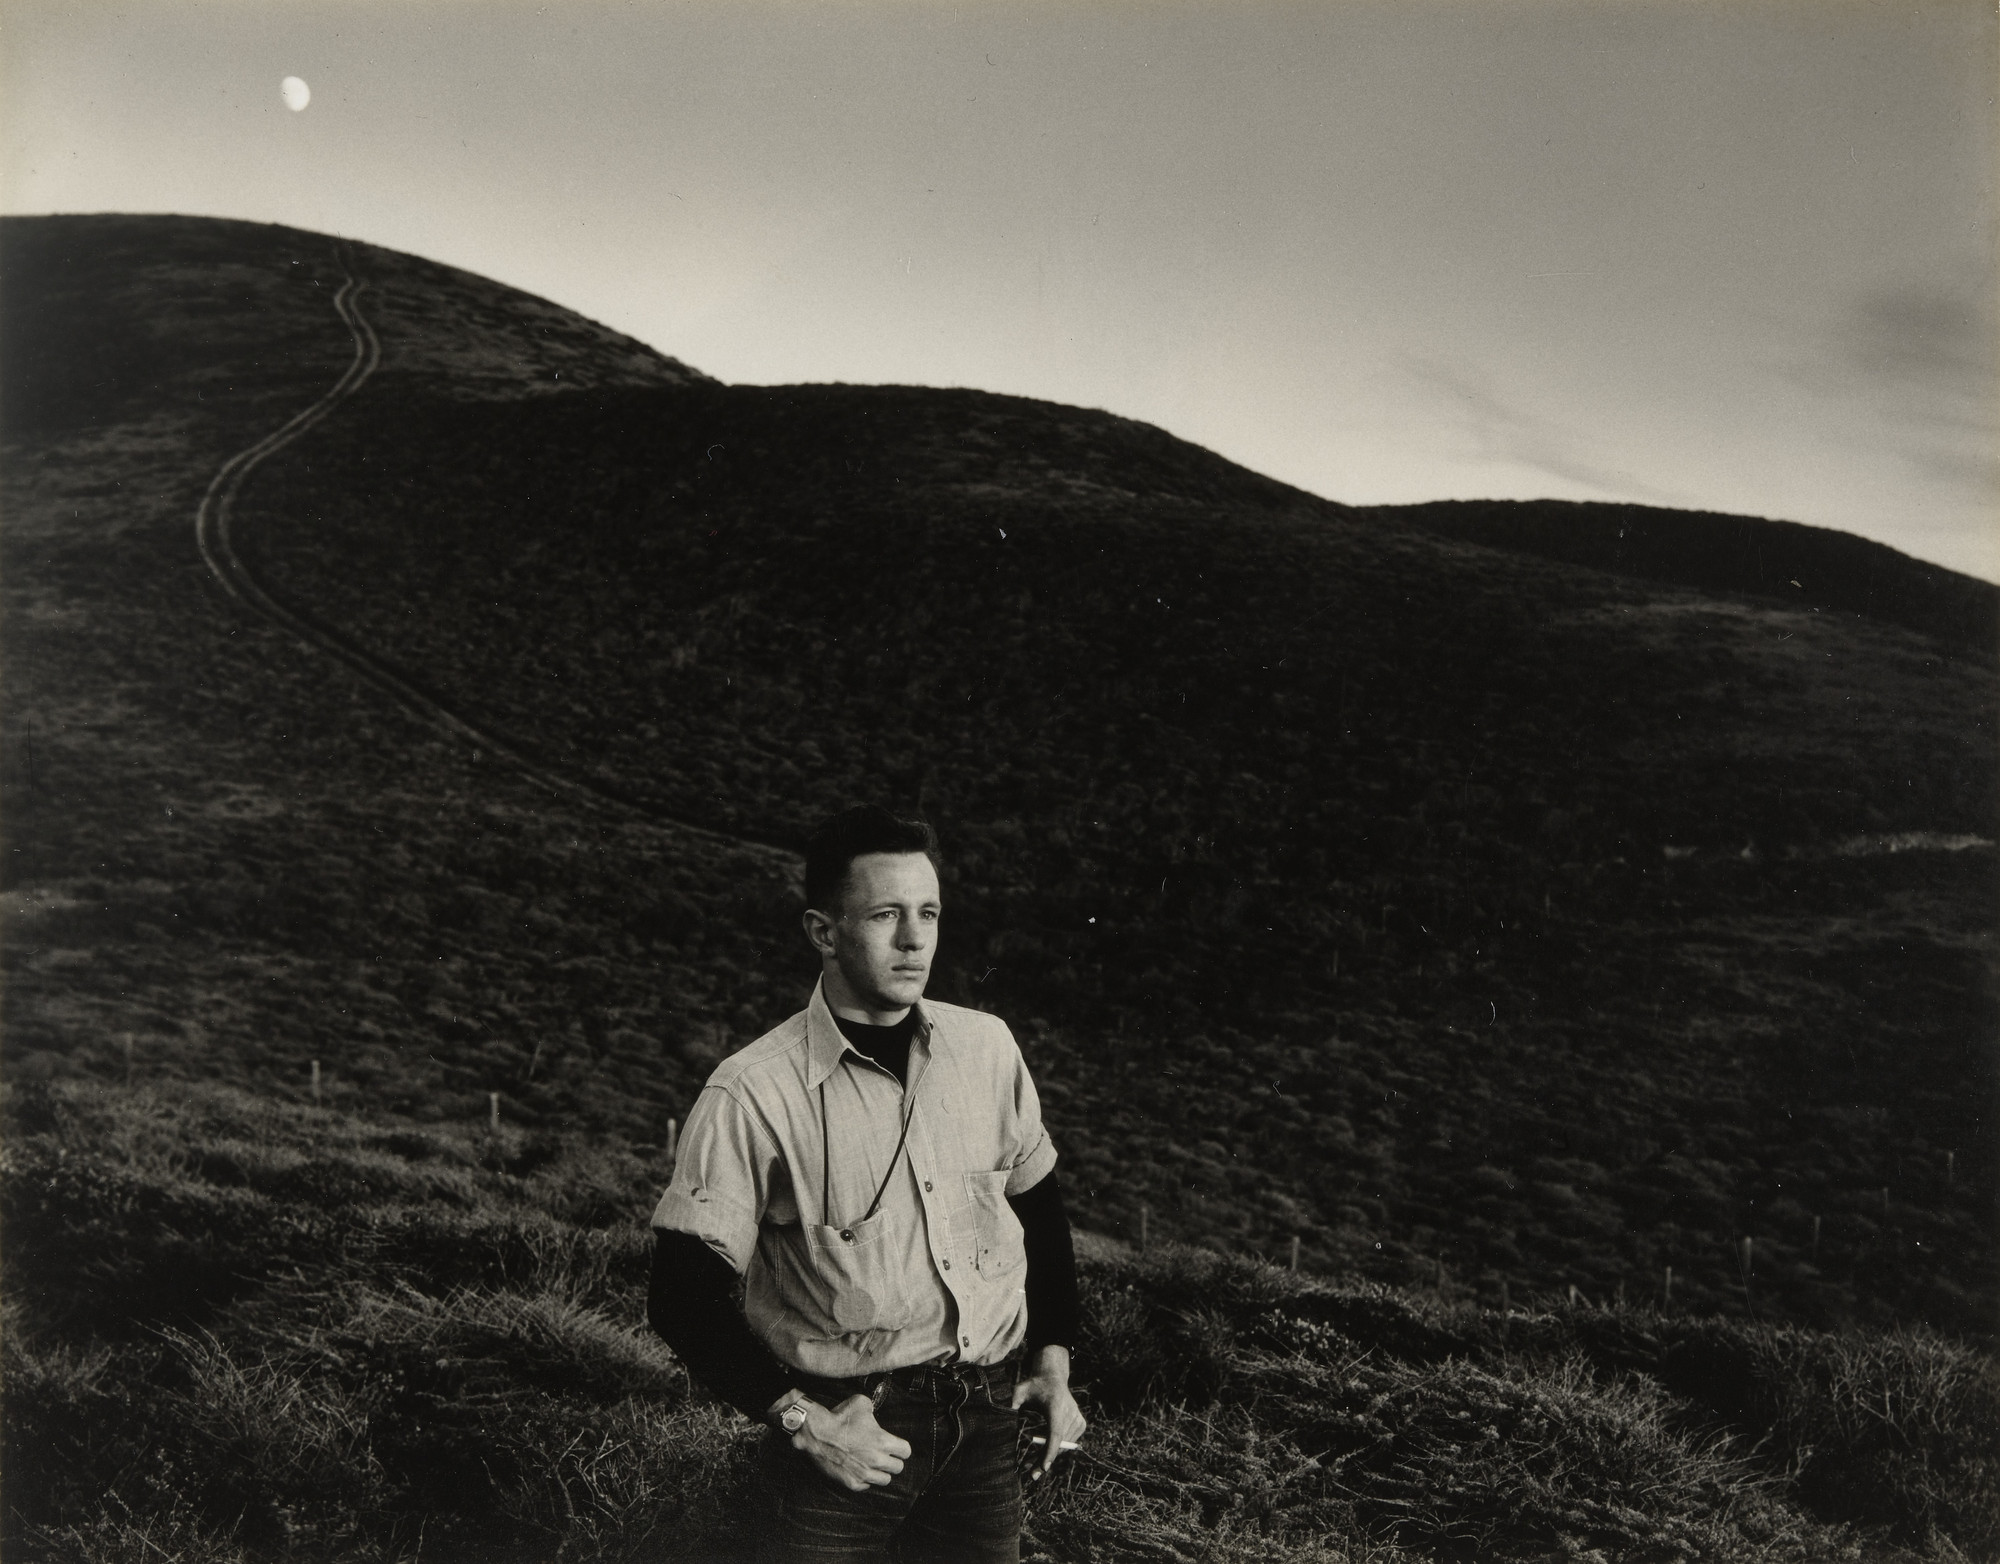 Minor White. Man and Moon, Matchstick Cove. 1947